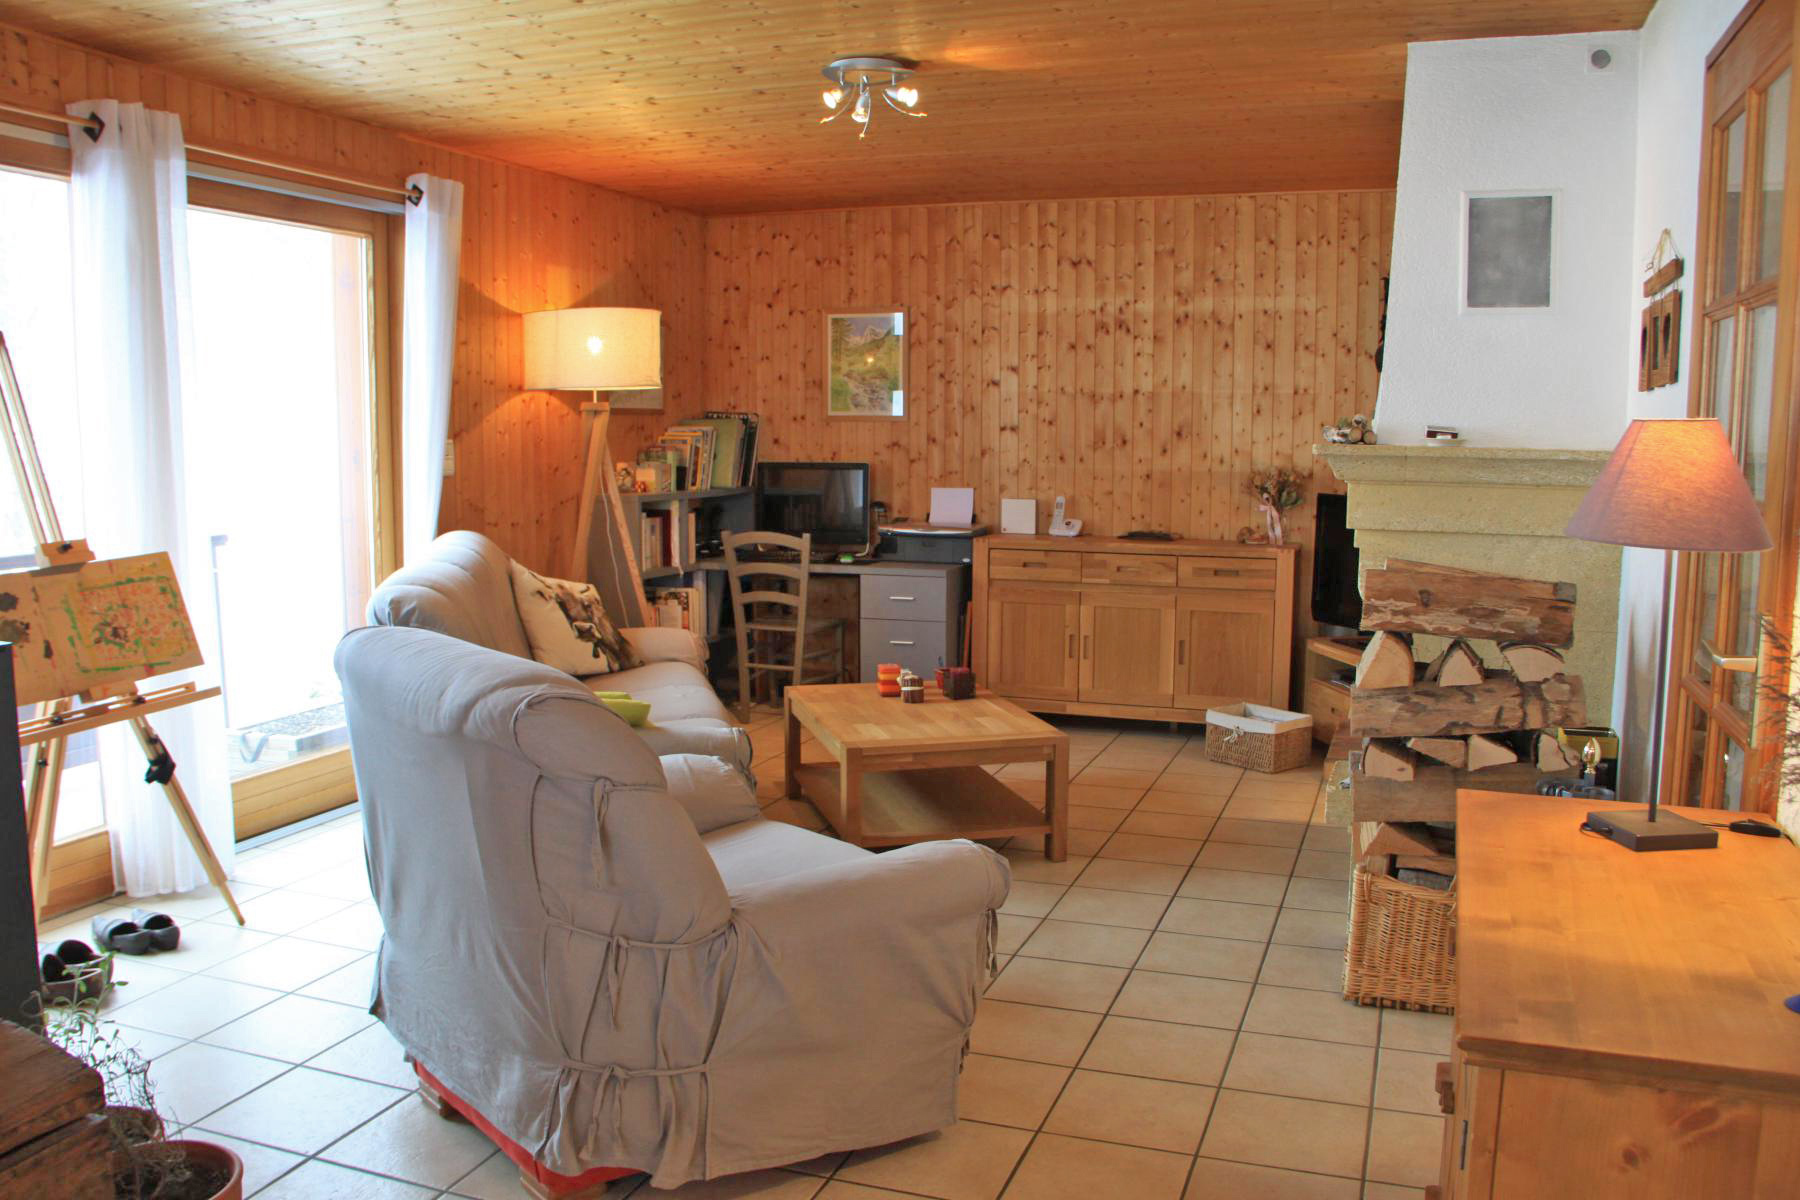 3 Bedroom Chalet in Les Gets'